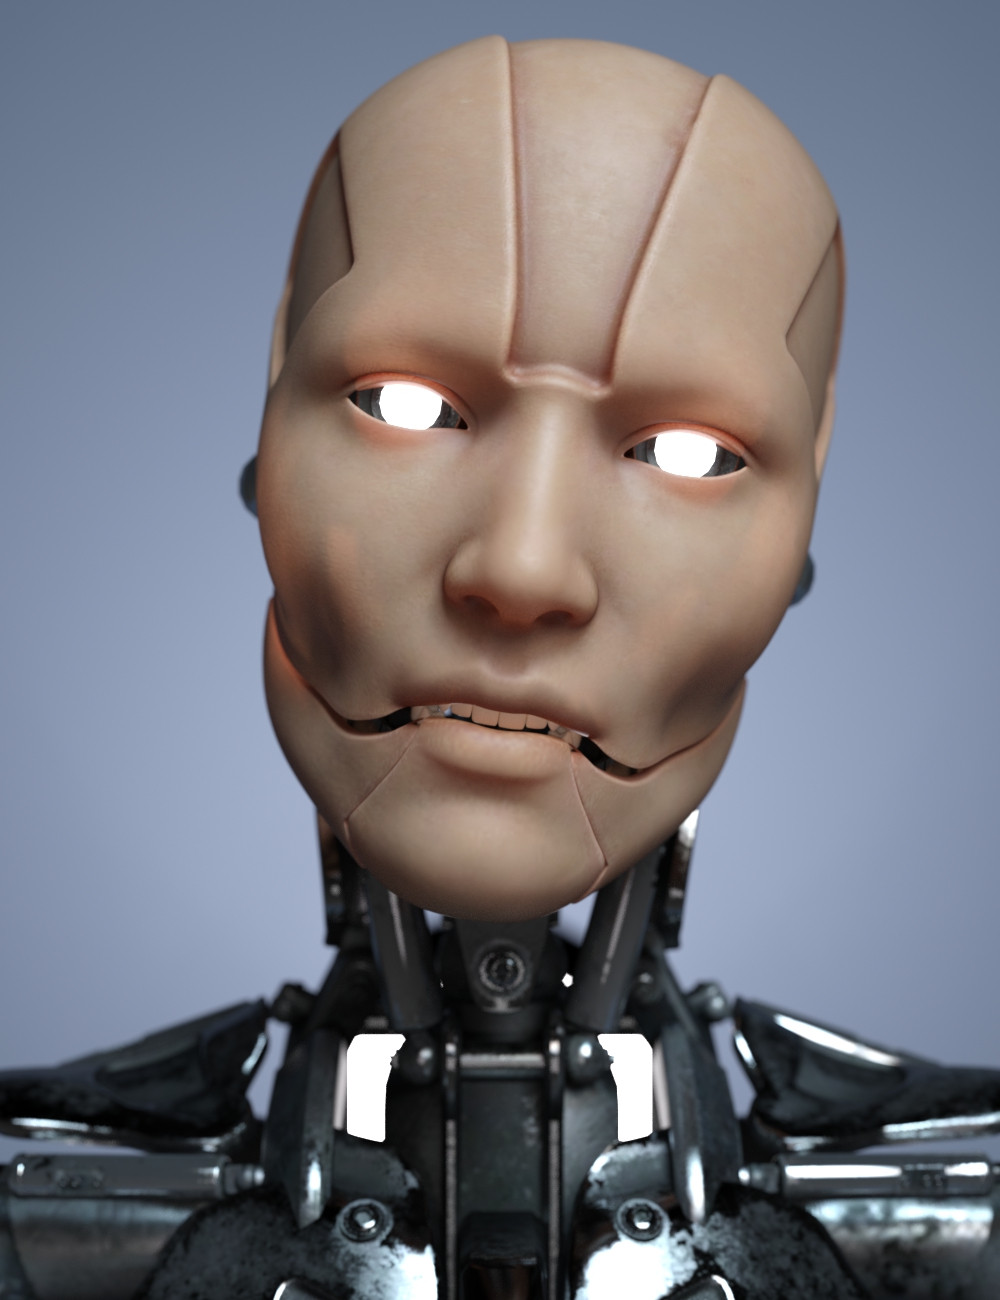 Image showing female cyborg head with skin texture on face and glowing white eyes